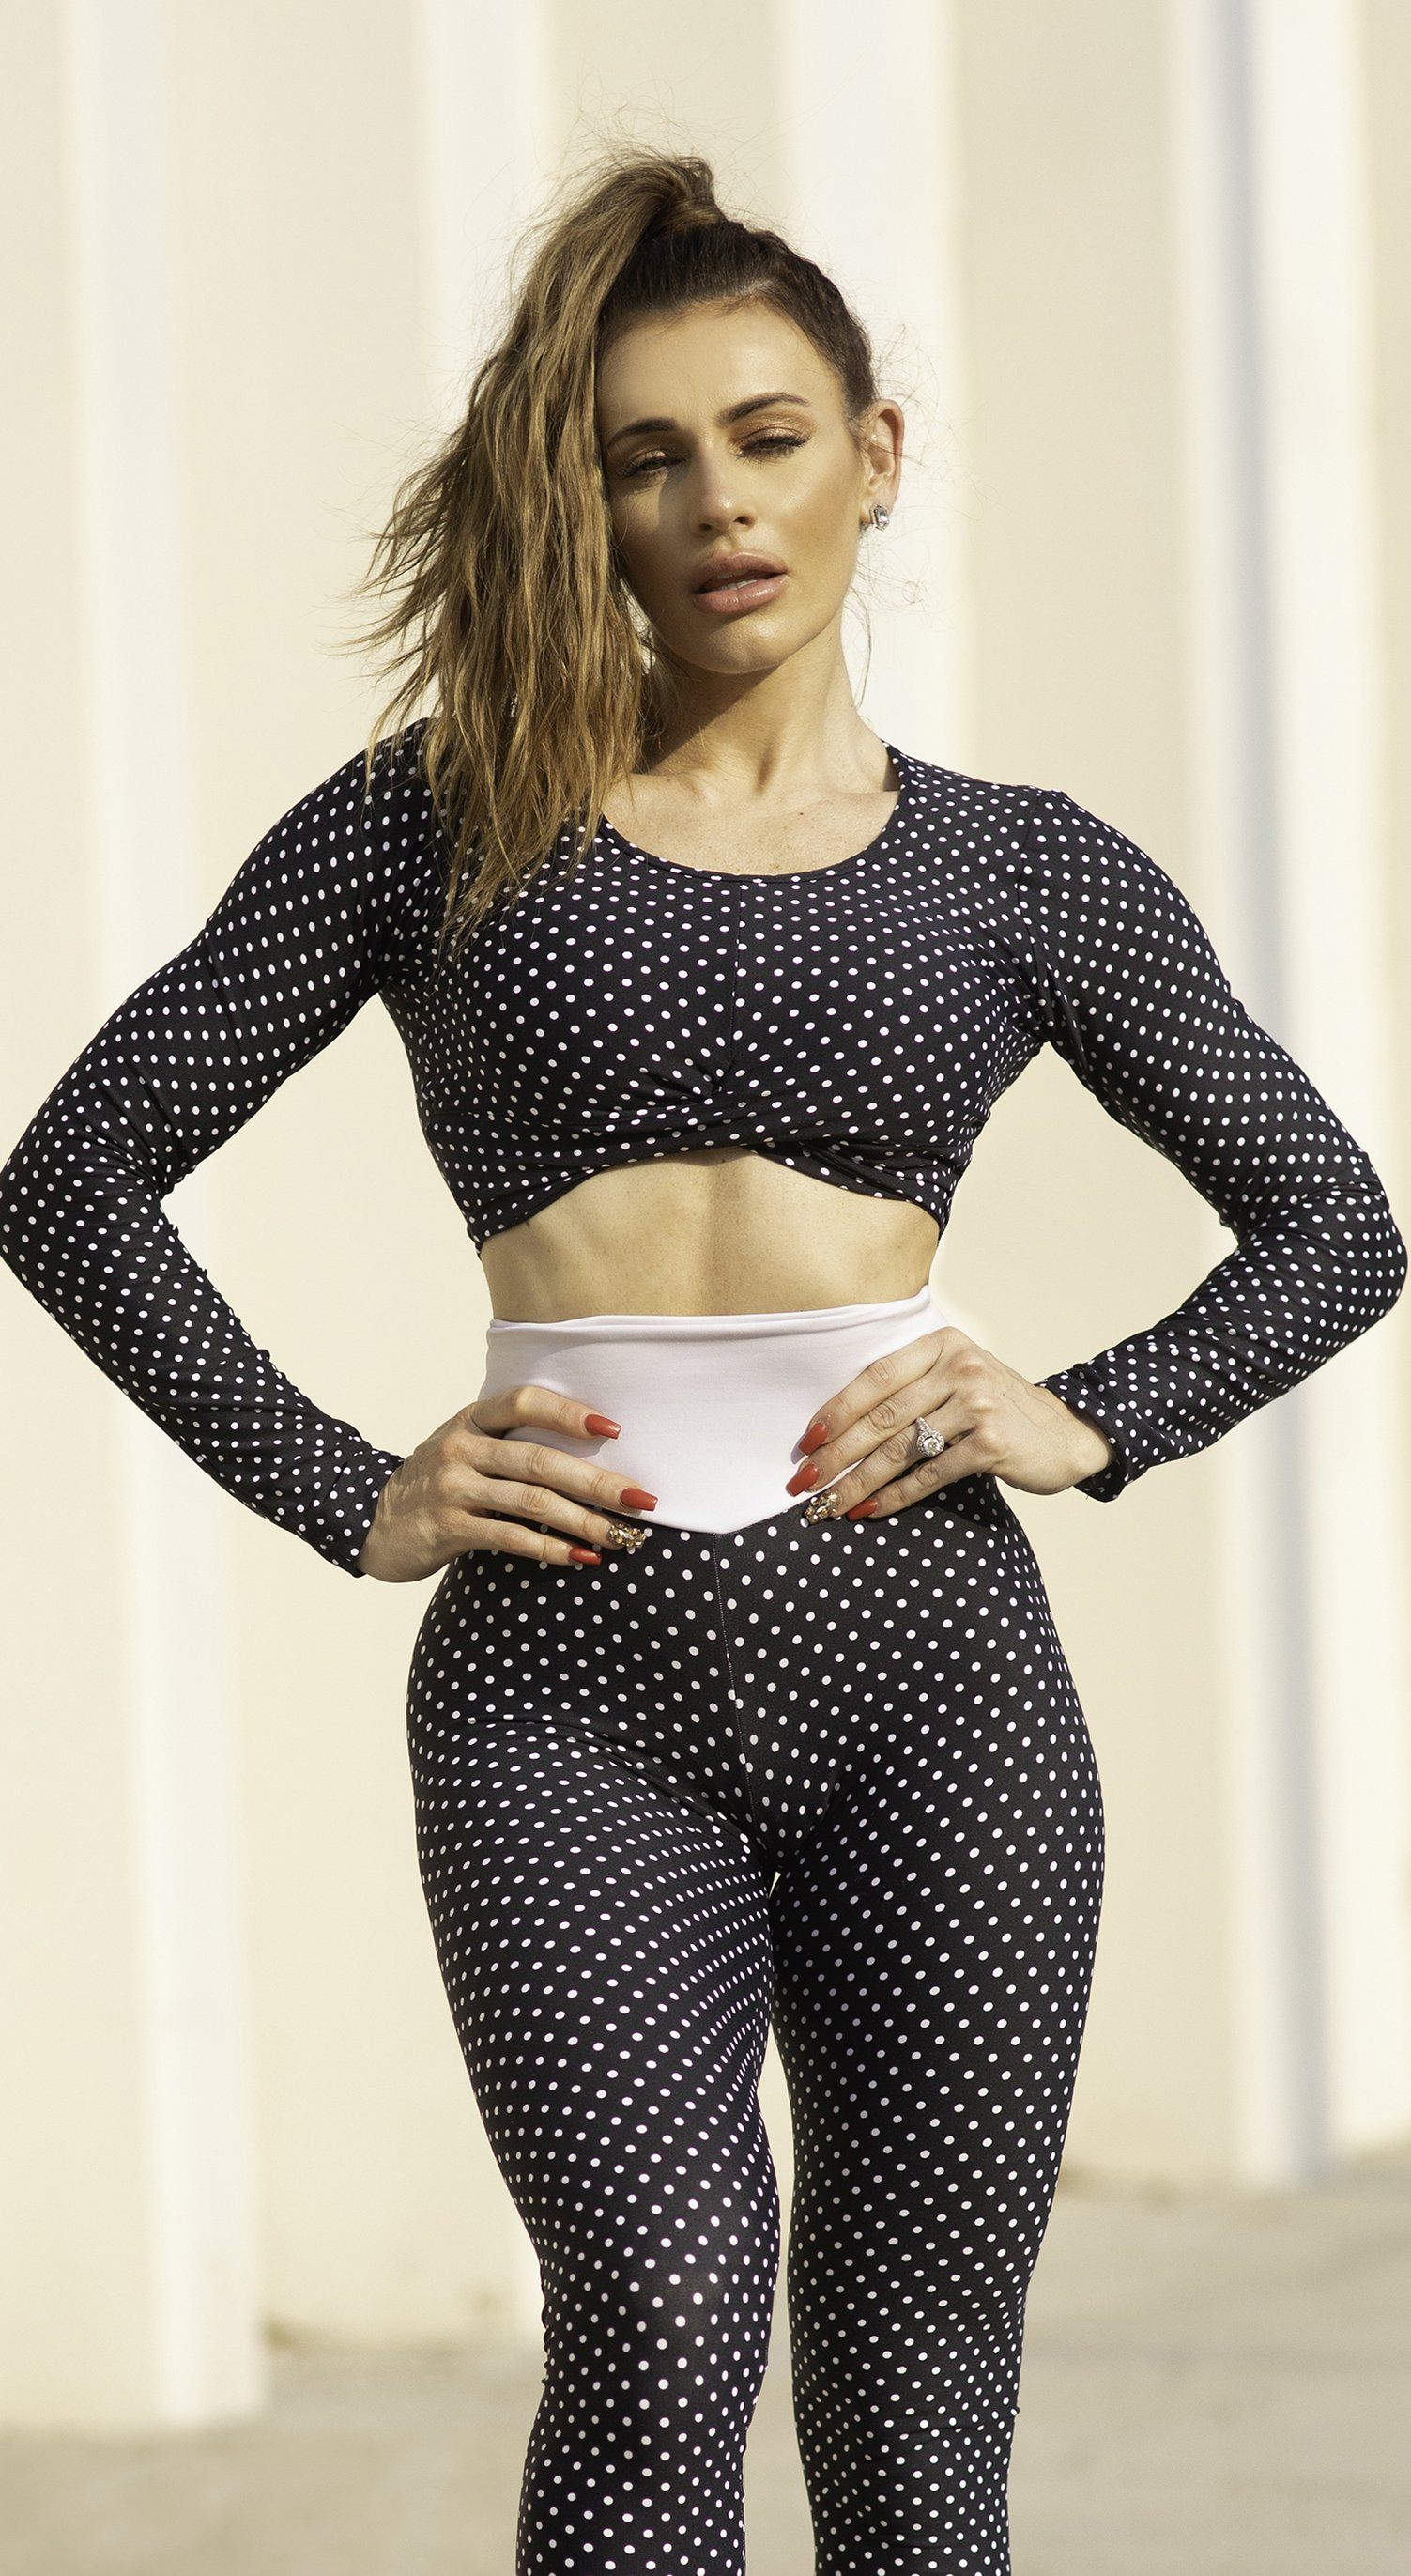 Brazilian Workout Top - Top Cropped Polka Dots Print